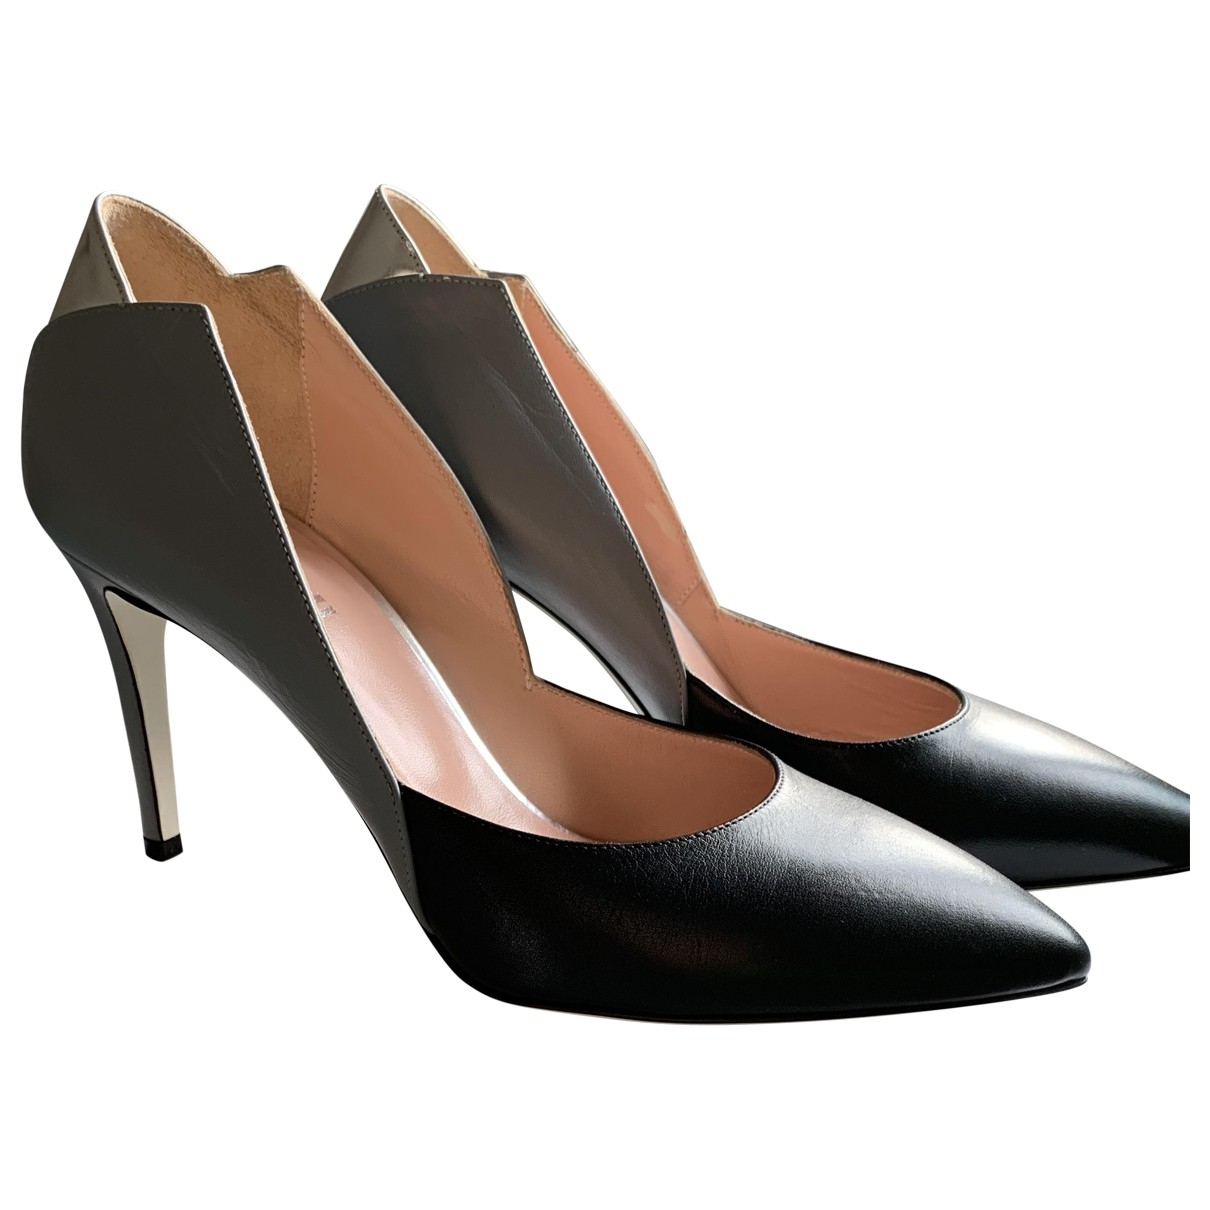 Pollini \N Black Leather Heels for Women 37 IT